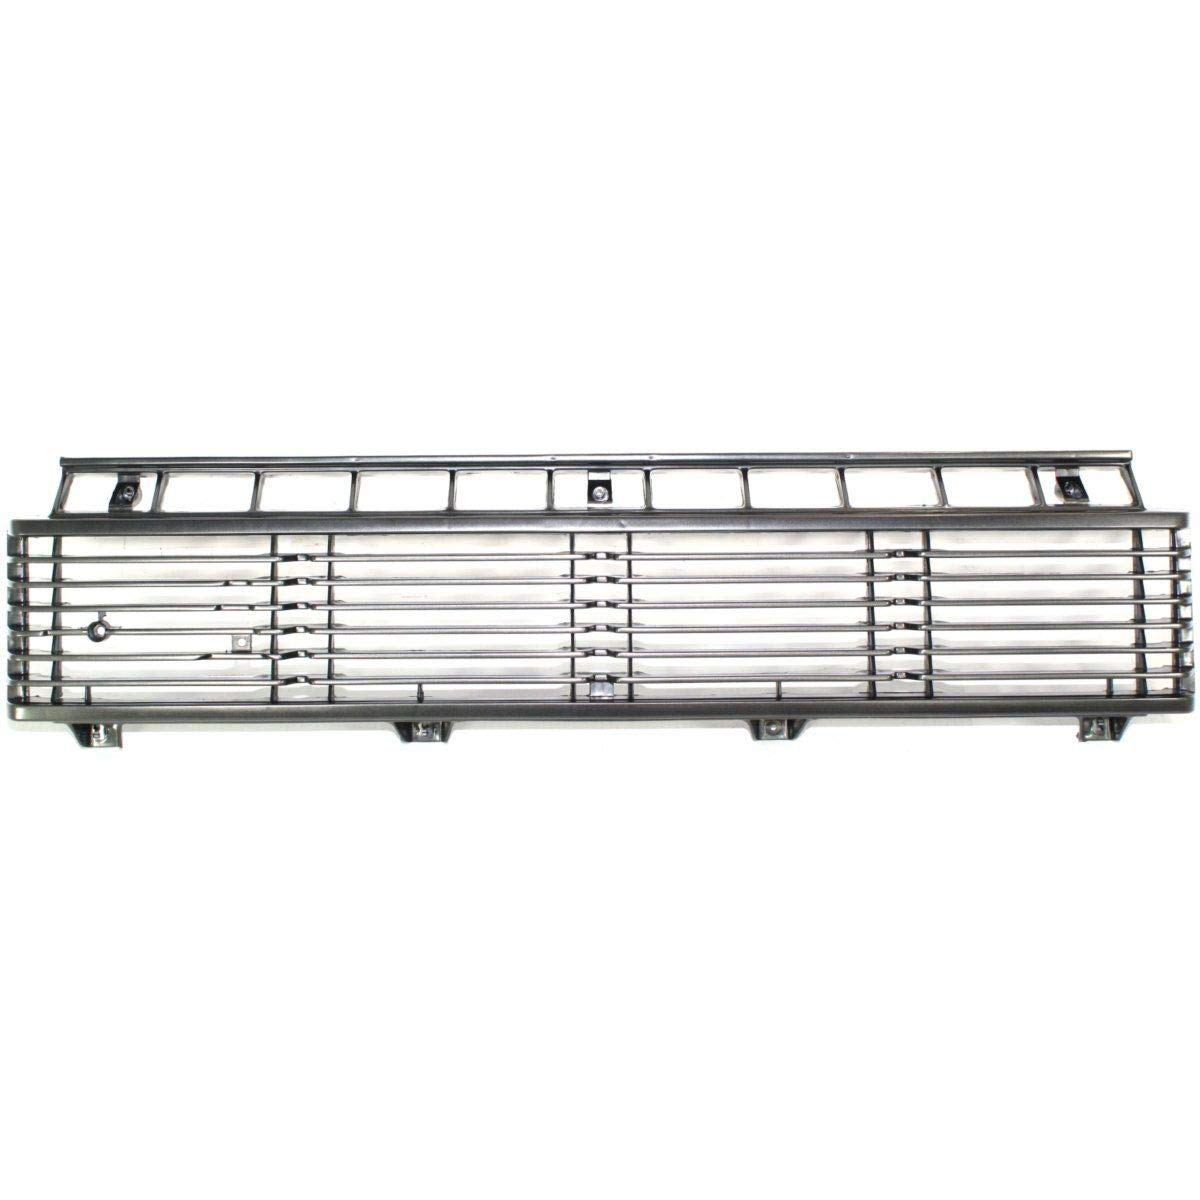 Grille For 79-81 Toyota Pickup Silver Plastic